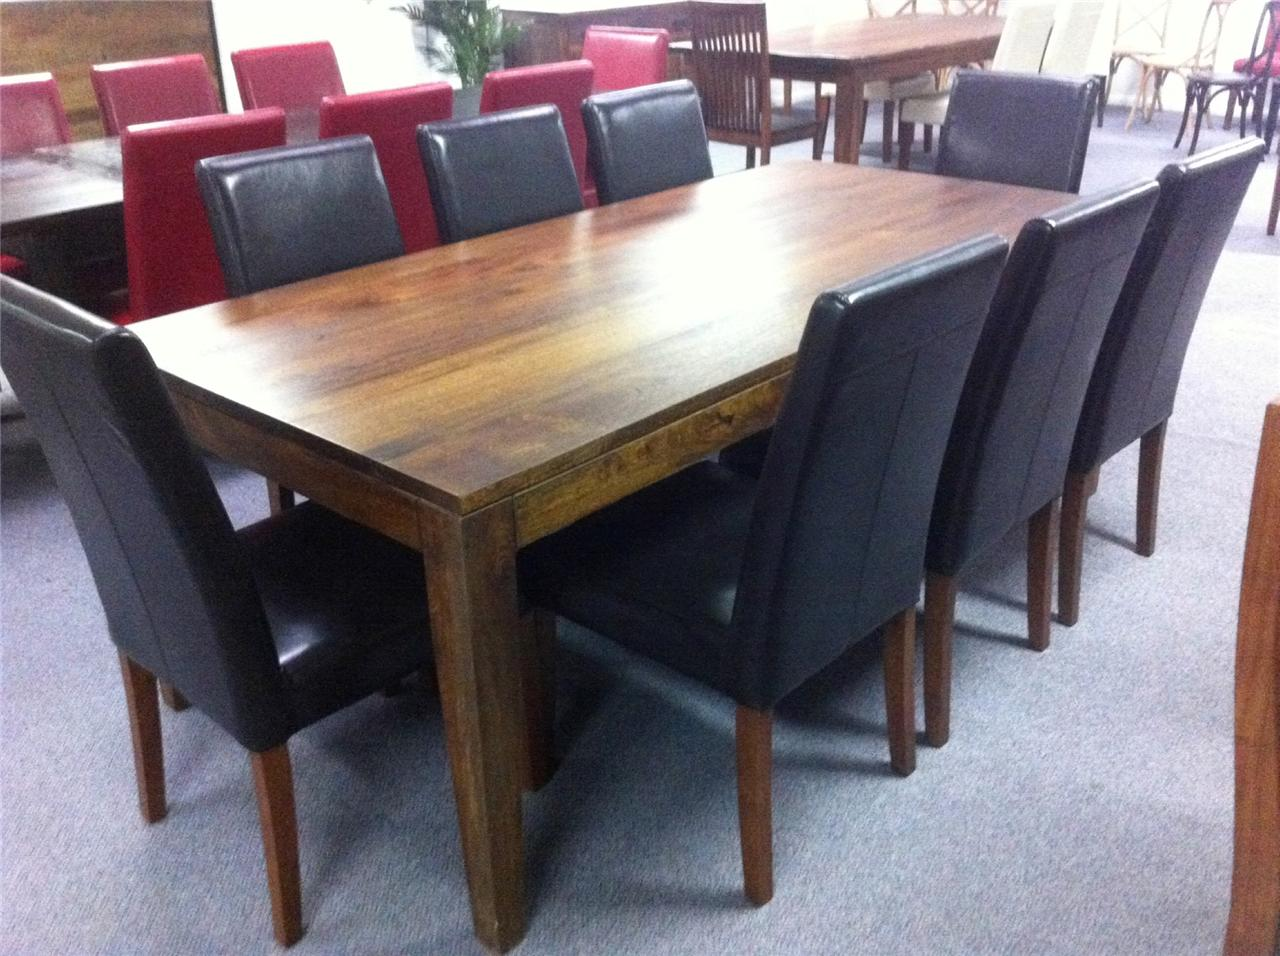 Solid Hardwood Timber Table 8 Chairs 9 Piece Dining SET Package EBay